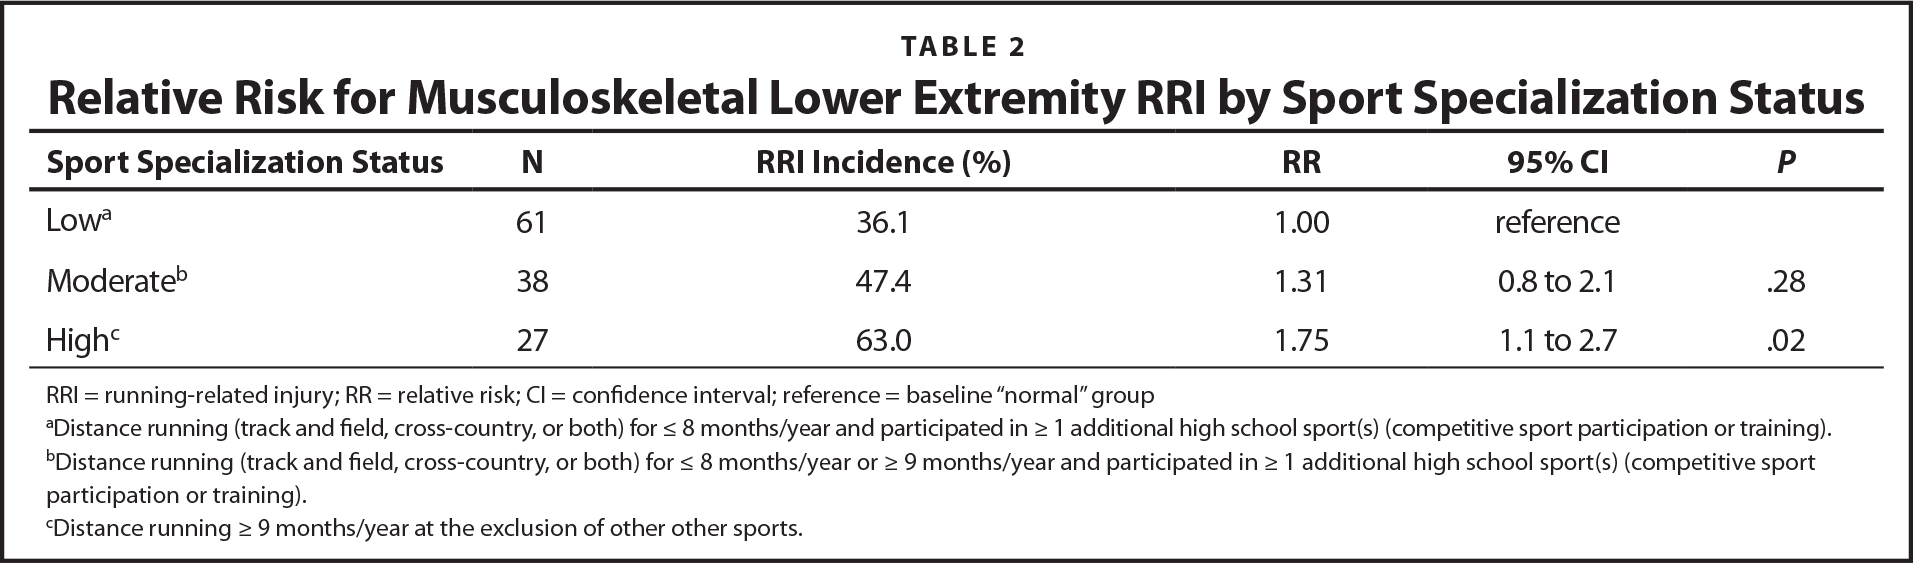 Relative Risk for Musculoskeletal Lower Extremity RRI by Sport Specialization Status